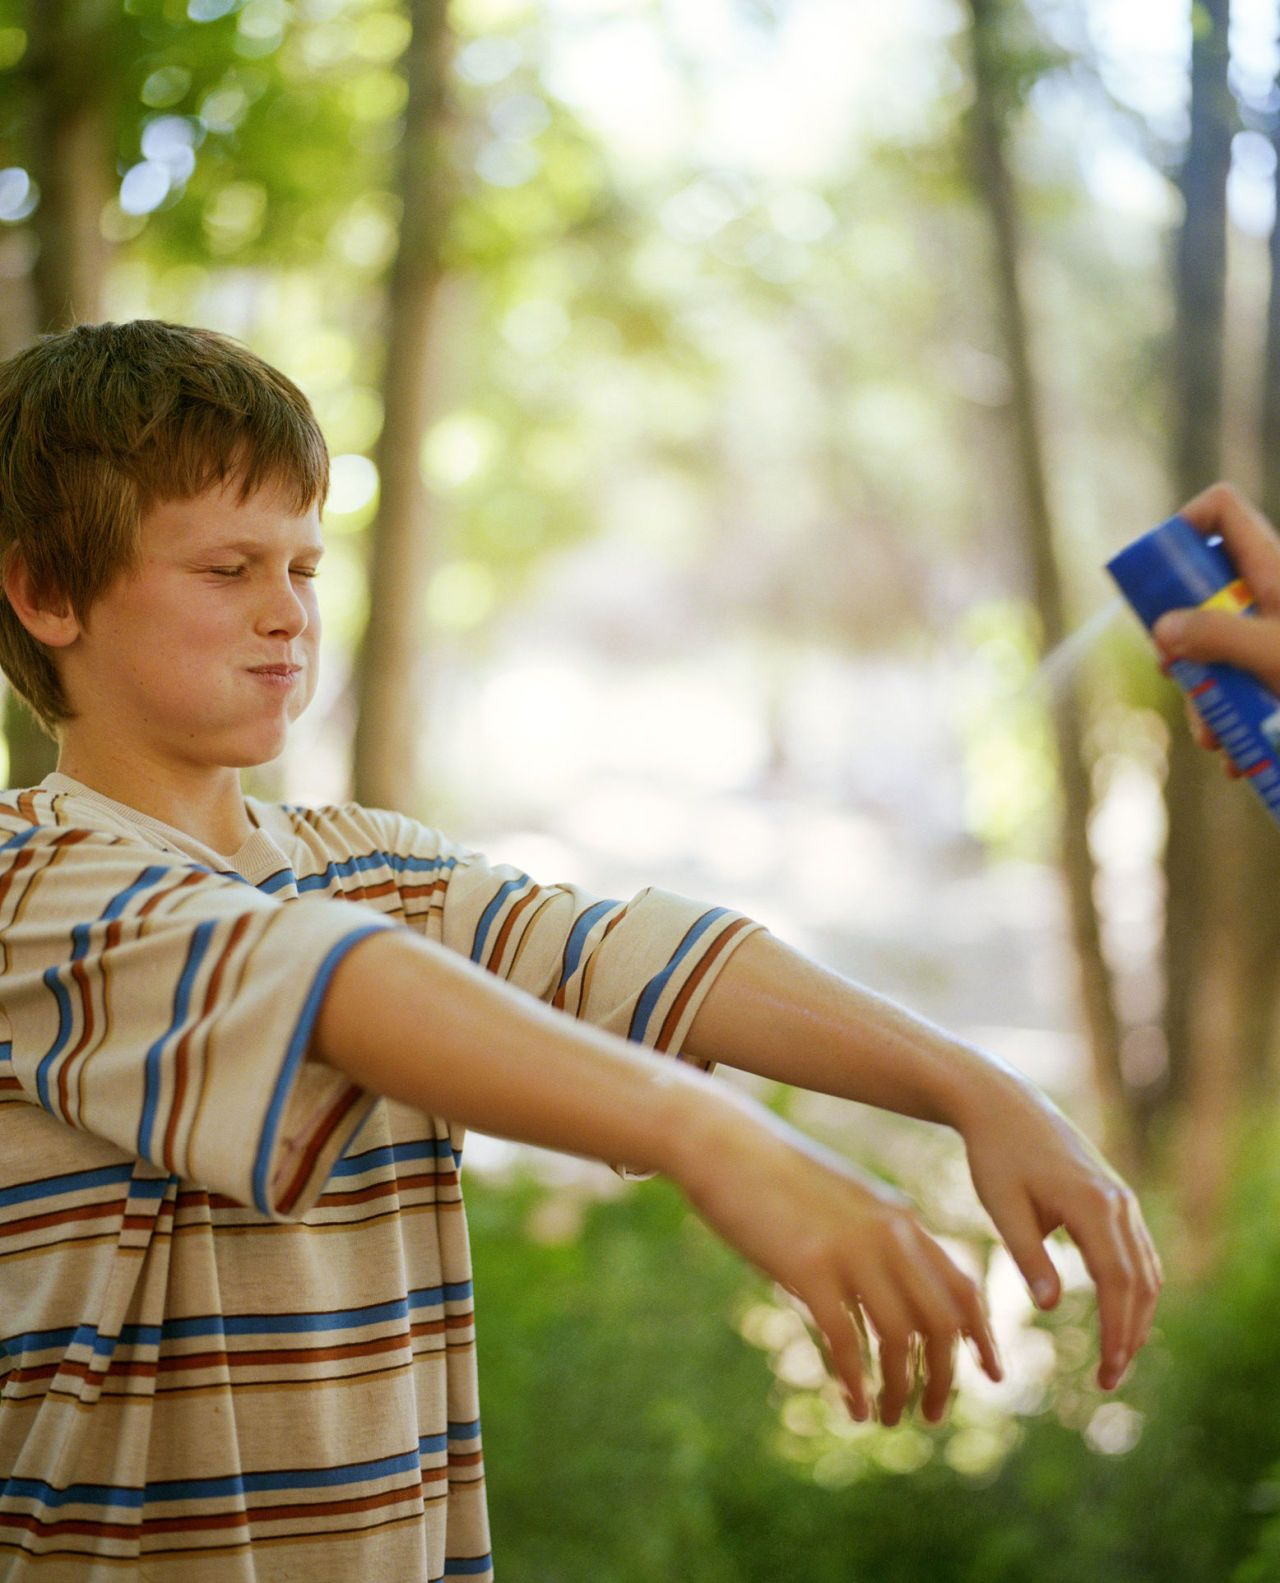 Keep Reading: How to use insect repellents safely during pregnancy recommendations